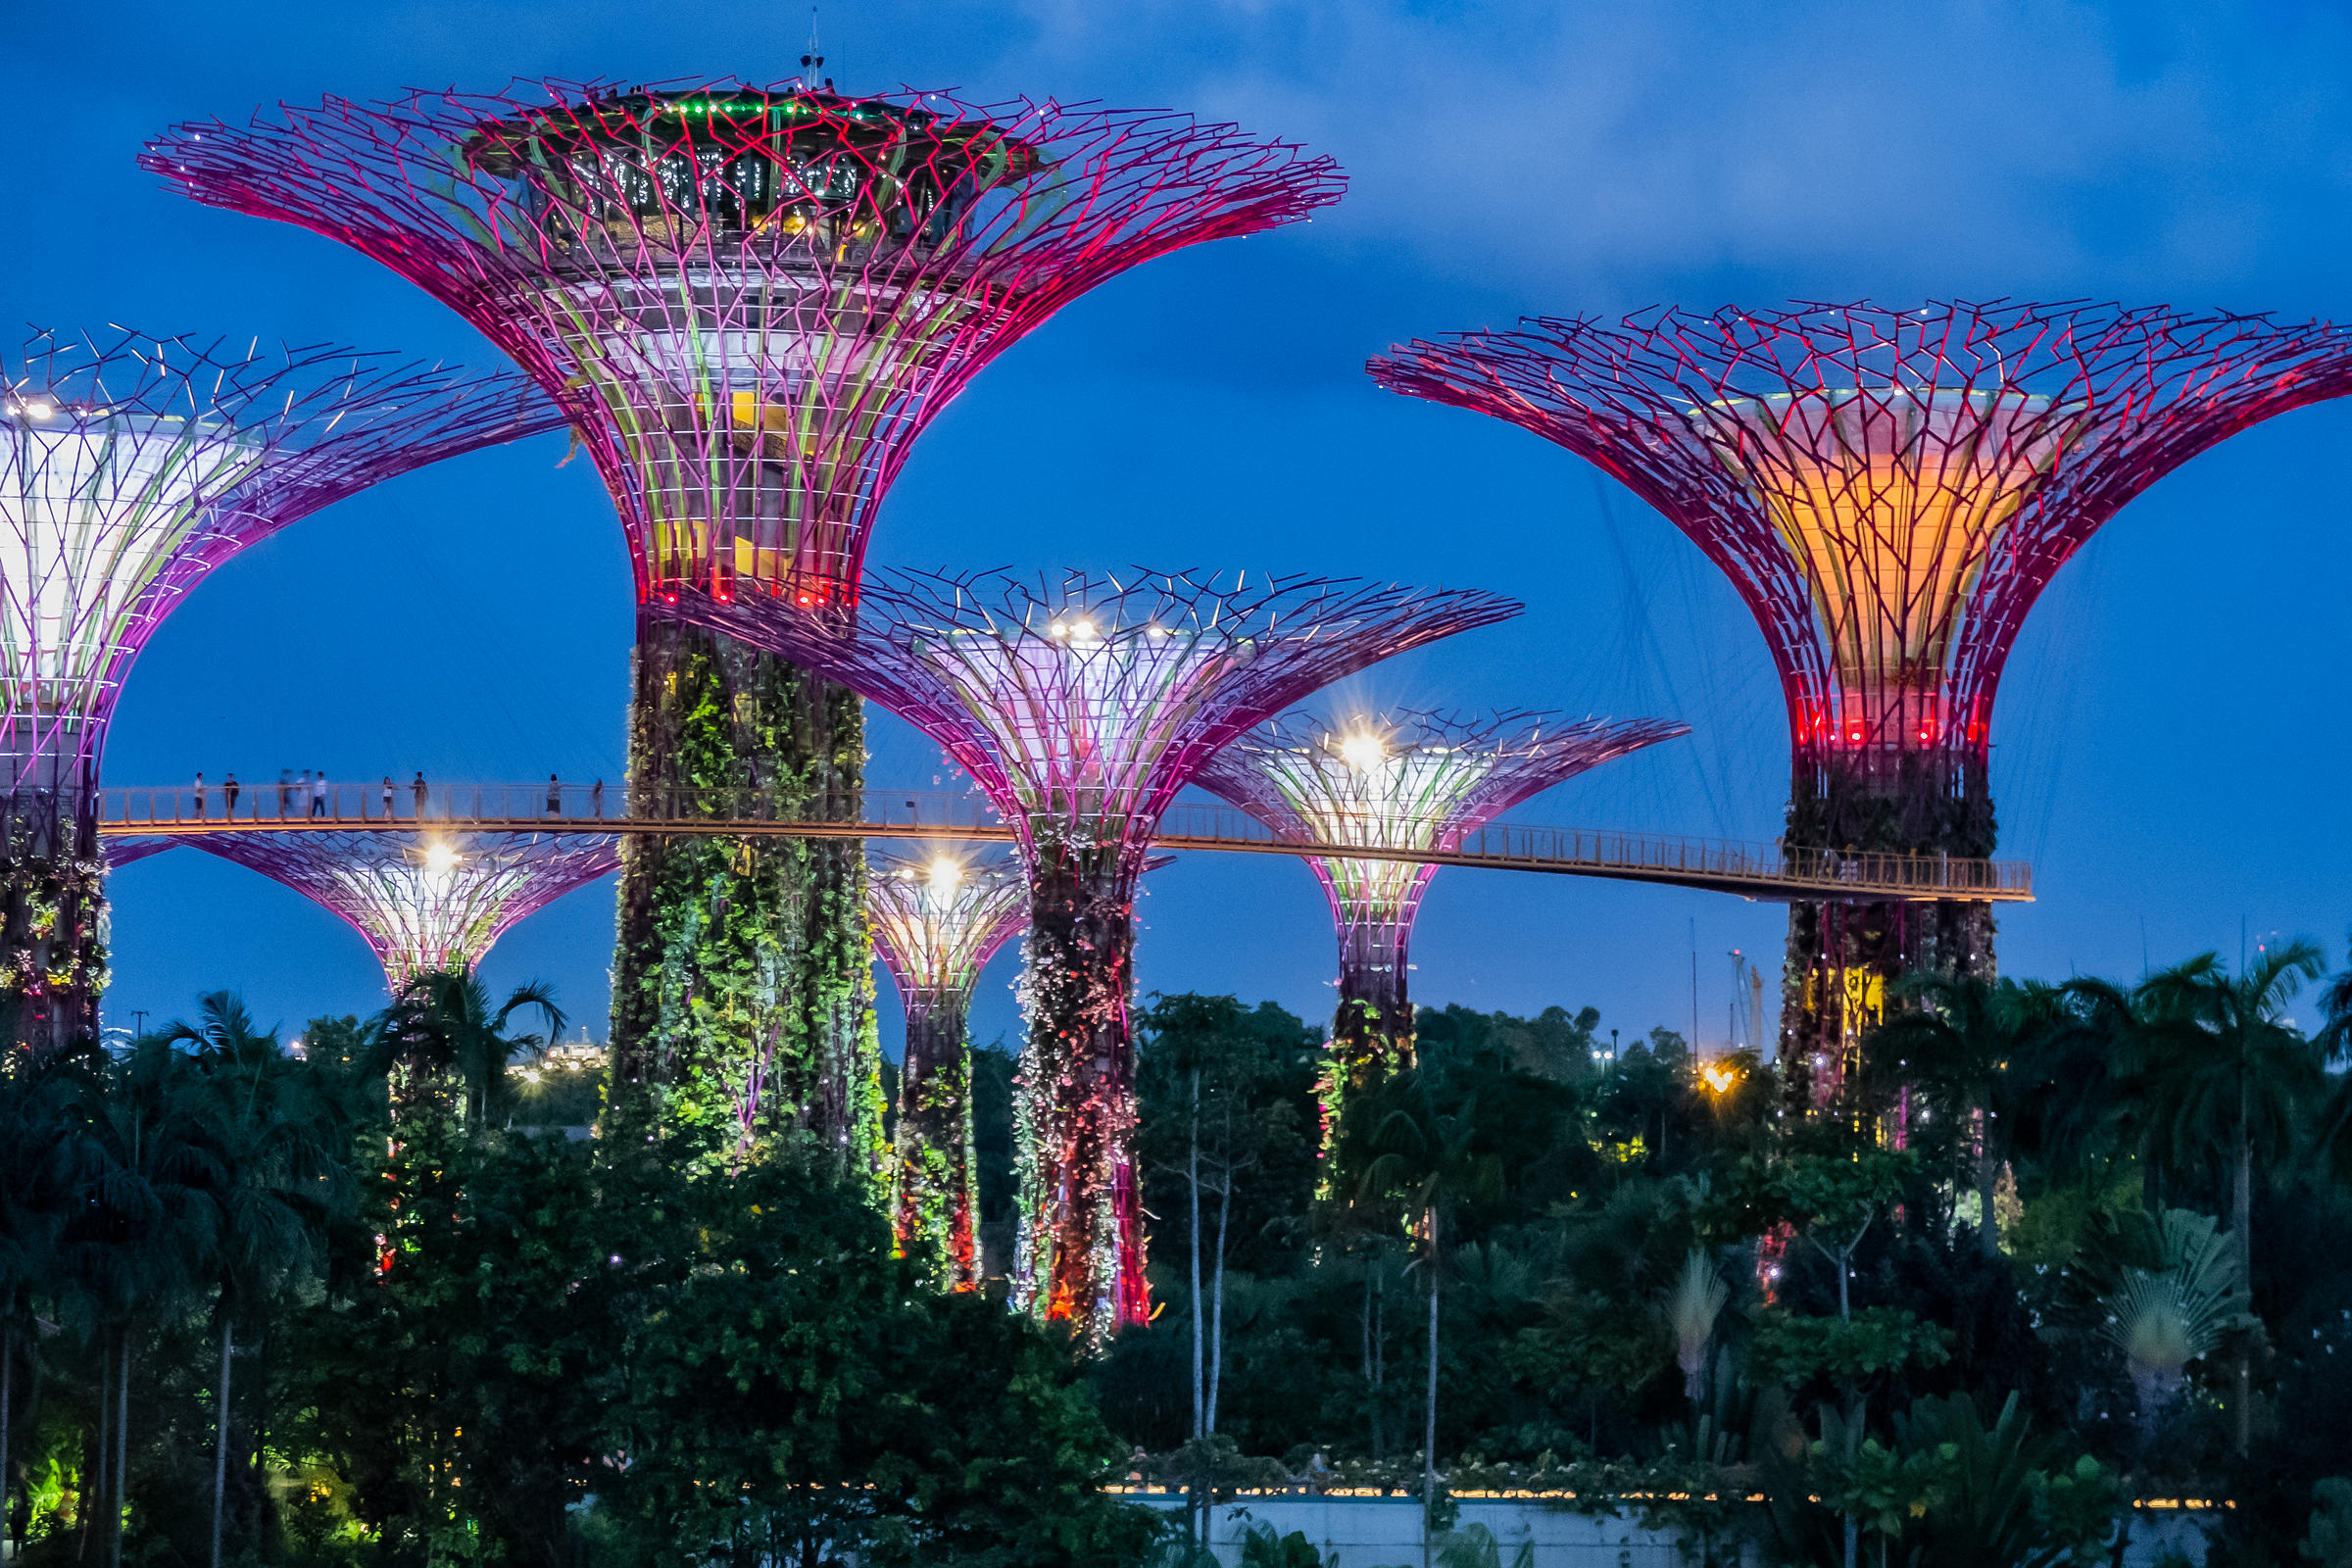 Night view of Gardens by the Bay. Singapore